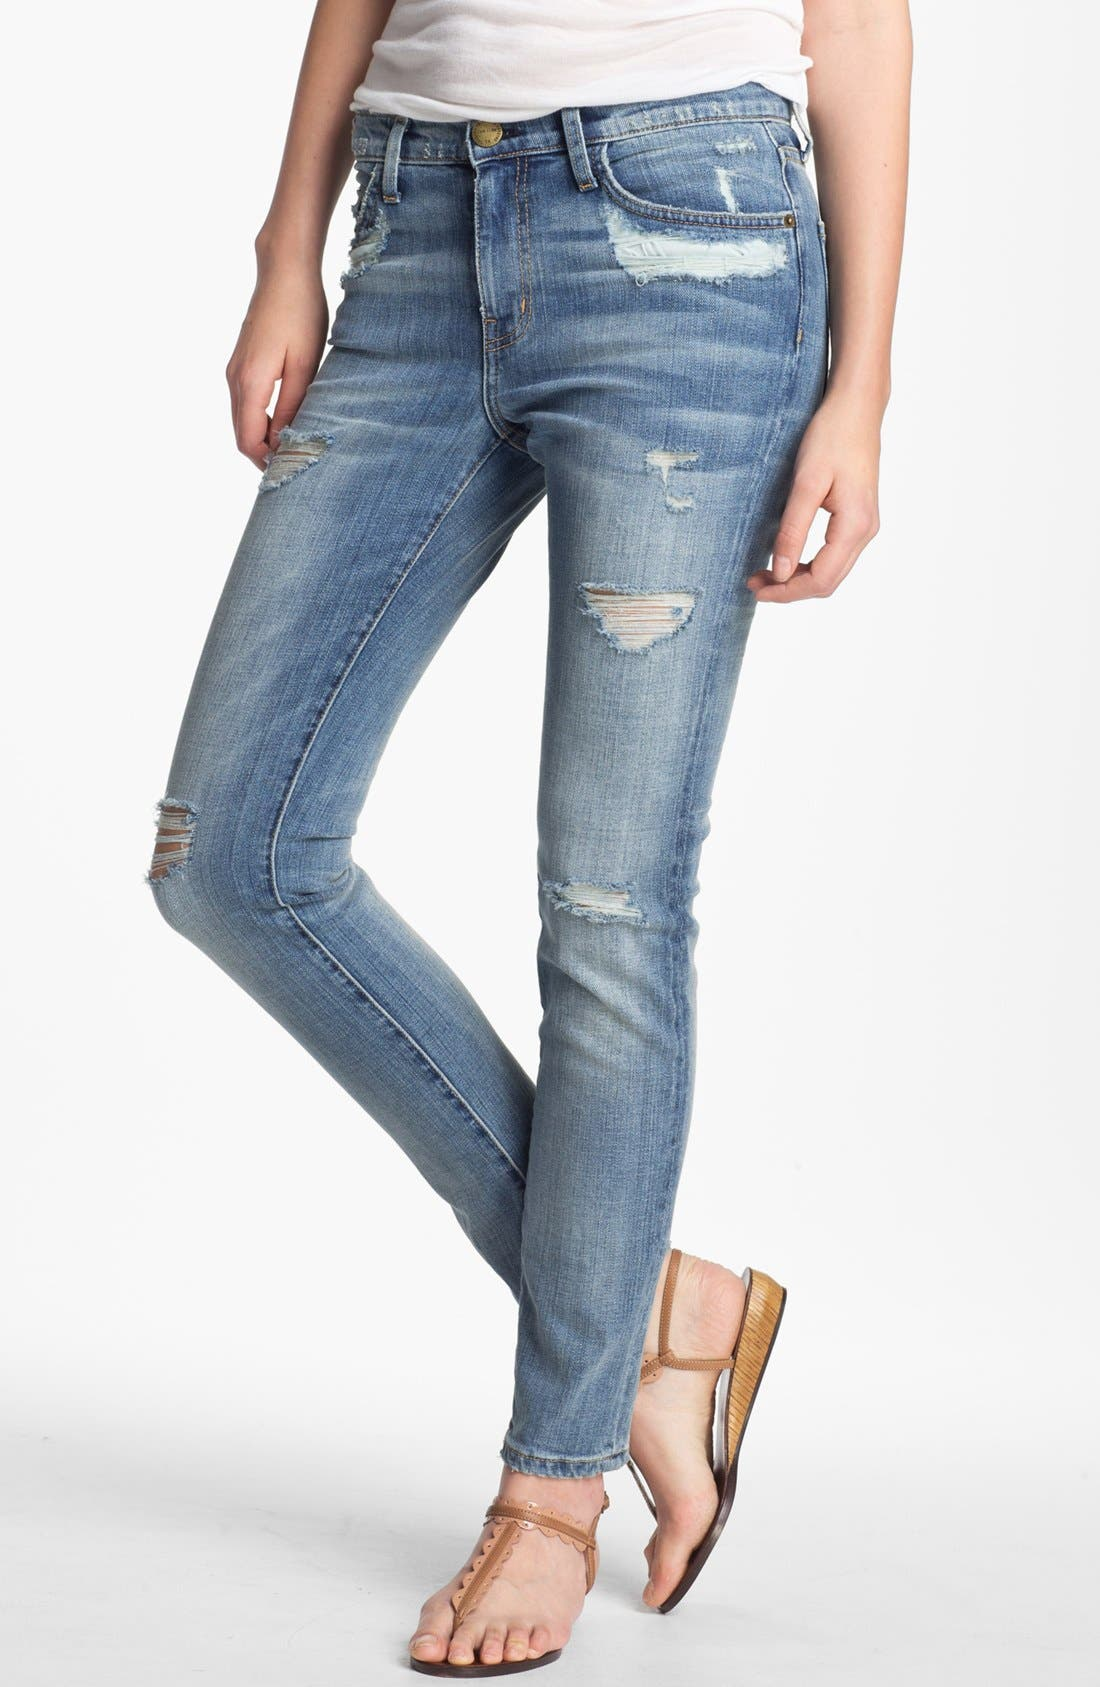 Main Image - Current/Elliott 'The Stiletto' Distressed Stretch Jeans (Shipwreck Destroy)